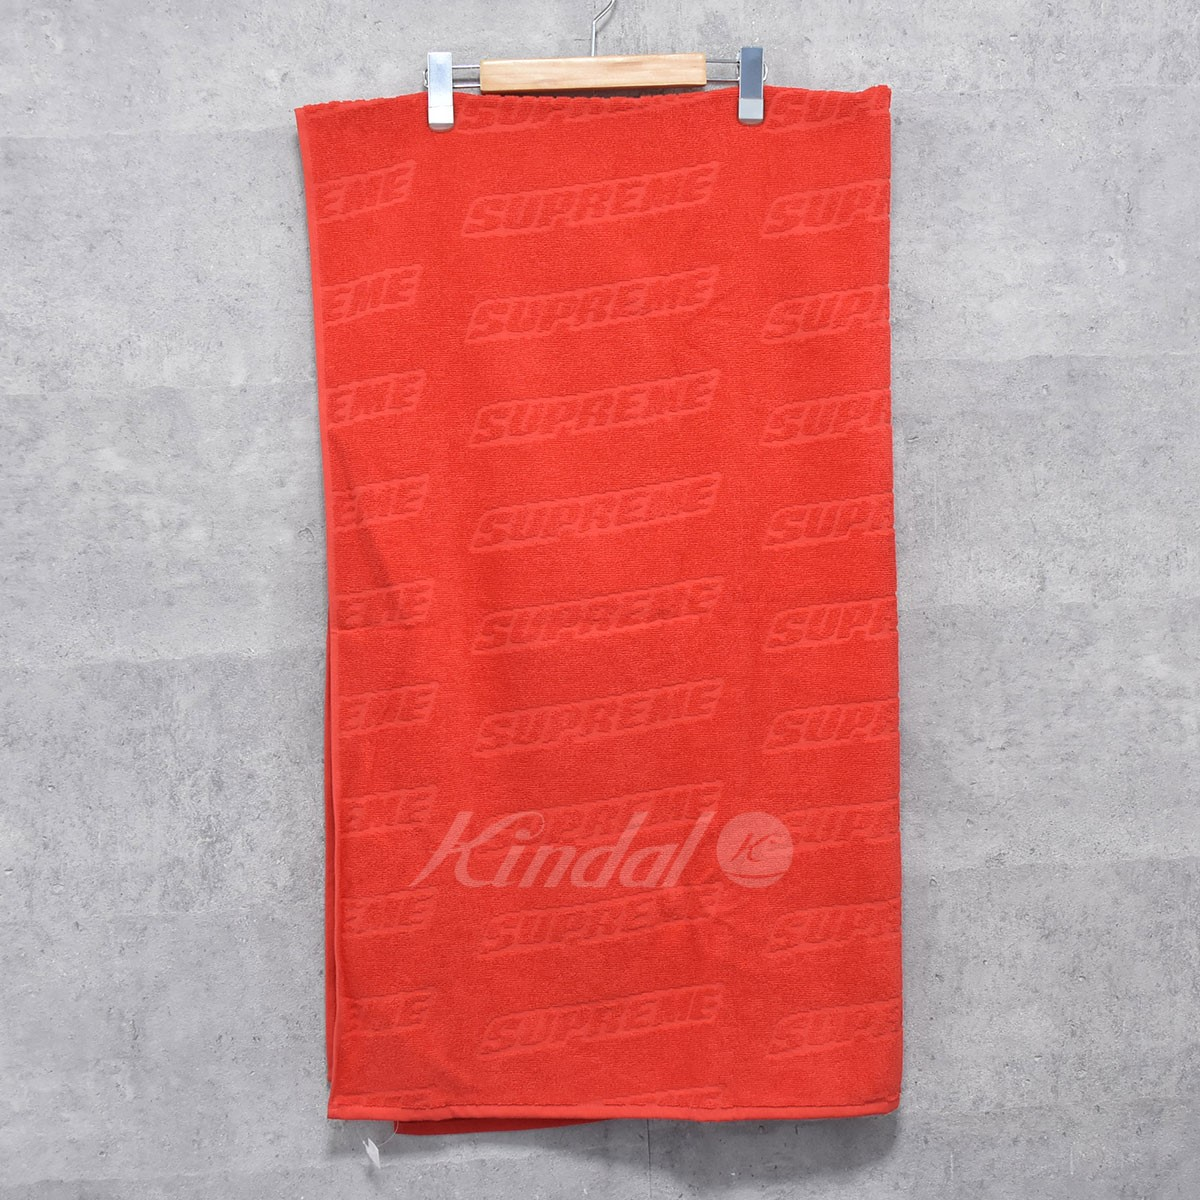 【中古】SUPREME 18SS Debossed Logo Beach Towel ビーチタオル 【送料無料】 【176005】 【KIND1550】